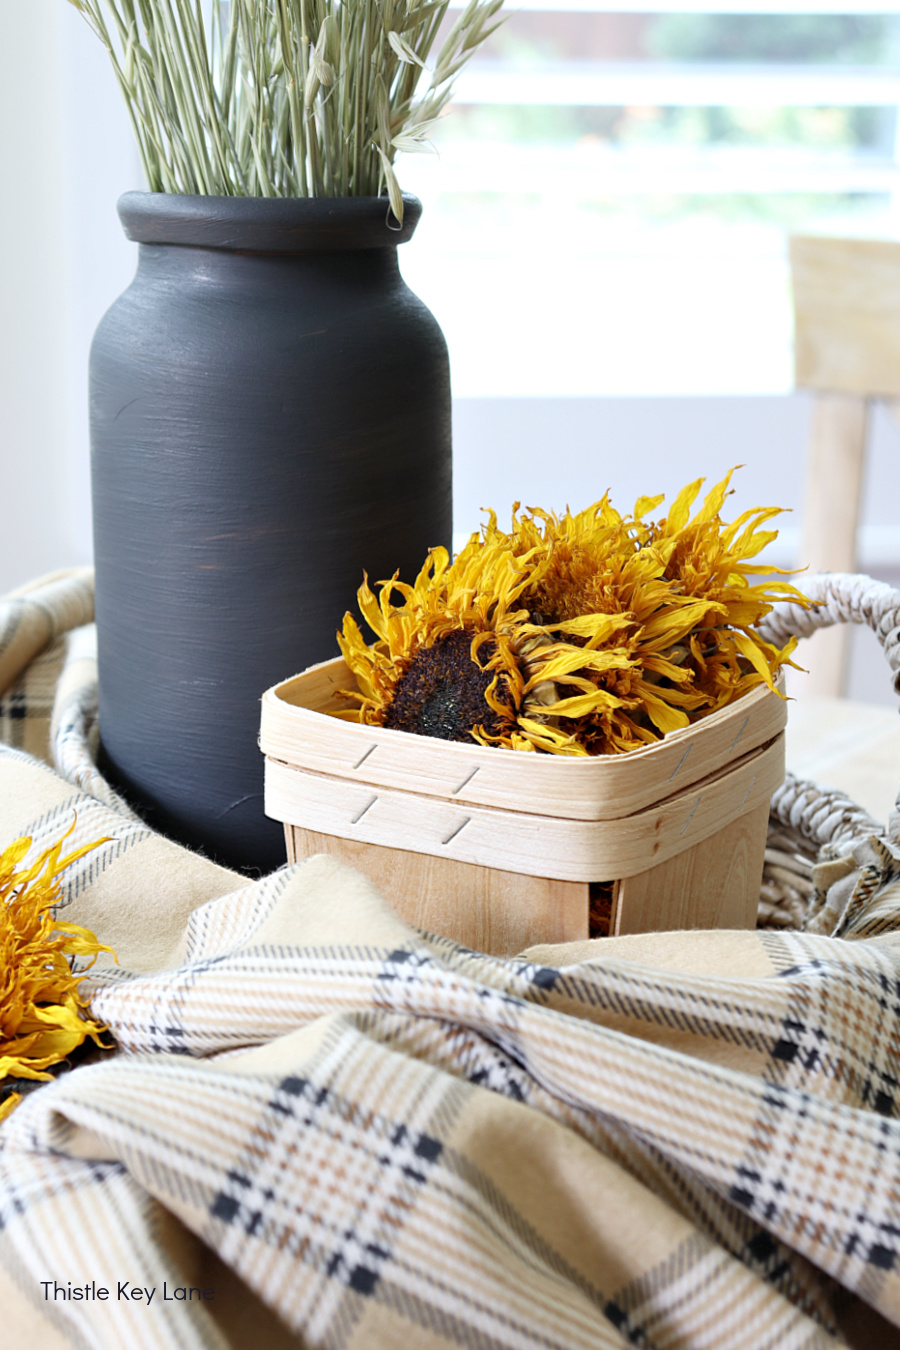 Dried sunflowers in a basket. How To Make A Plaid Table Throw.